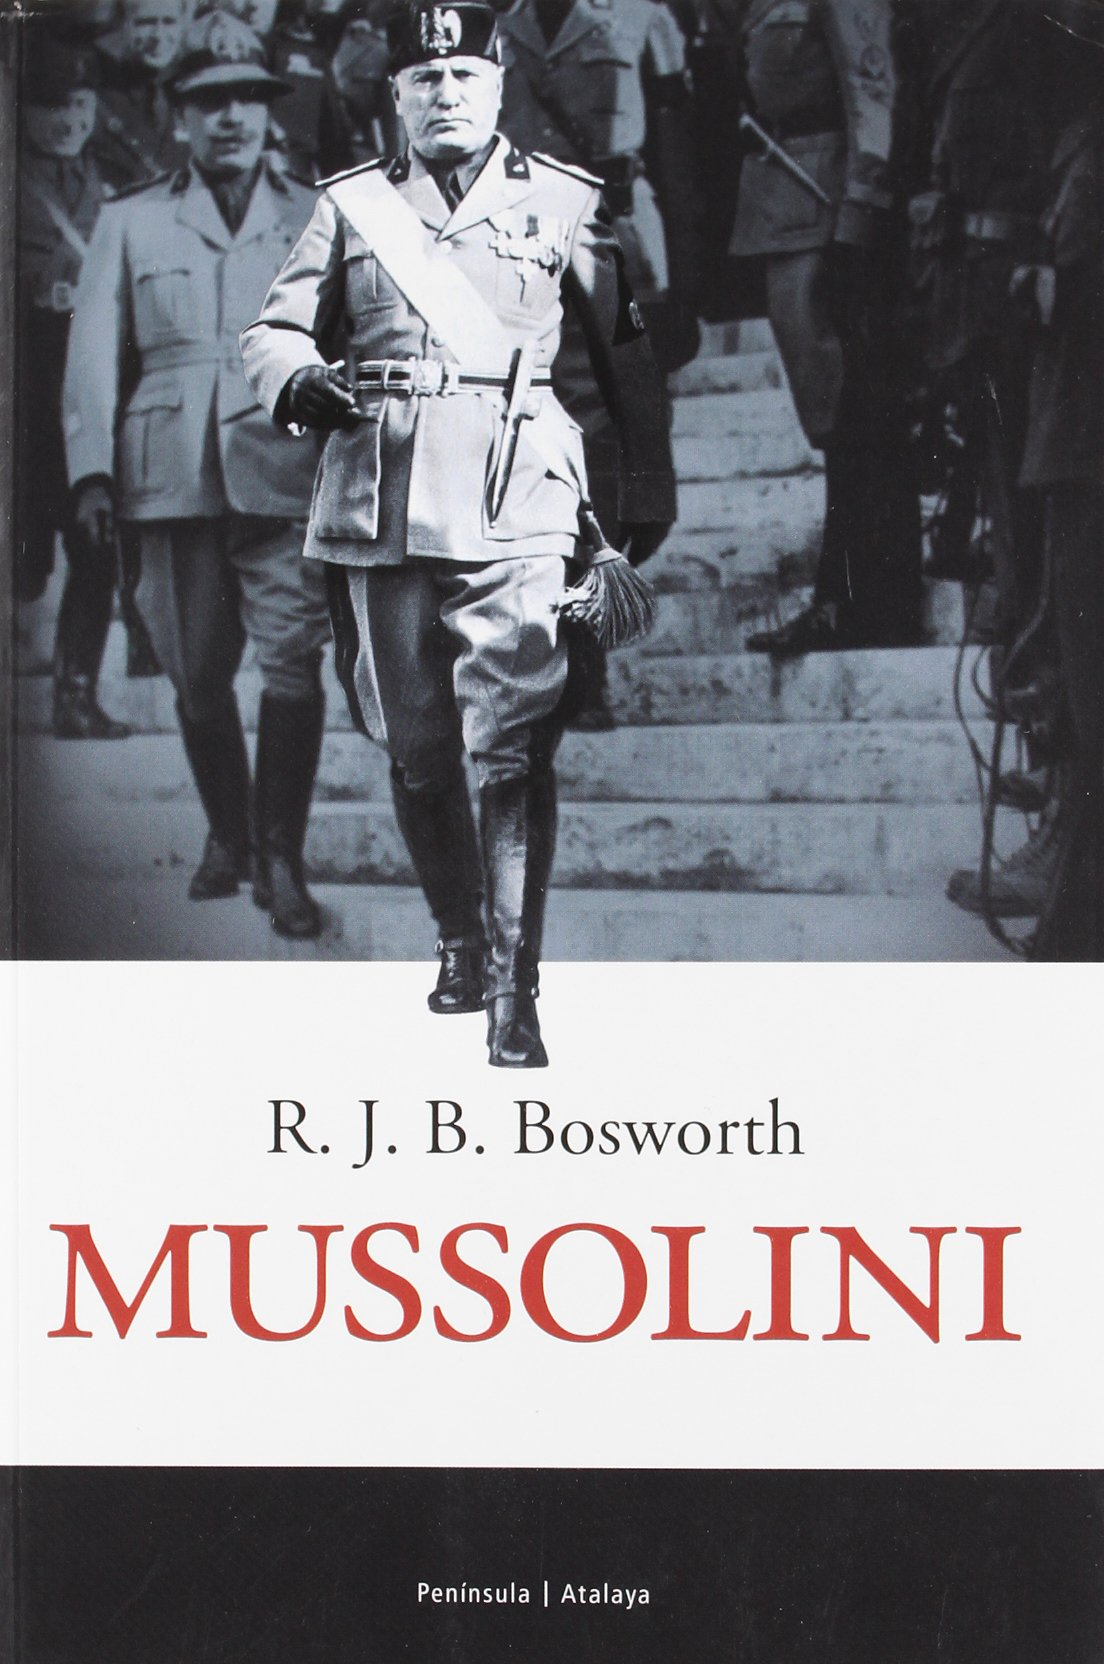 Mussolini (Spanish Edition) PDF